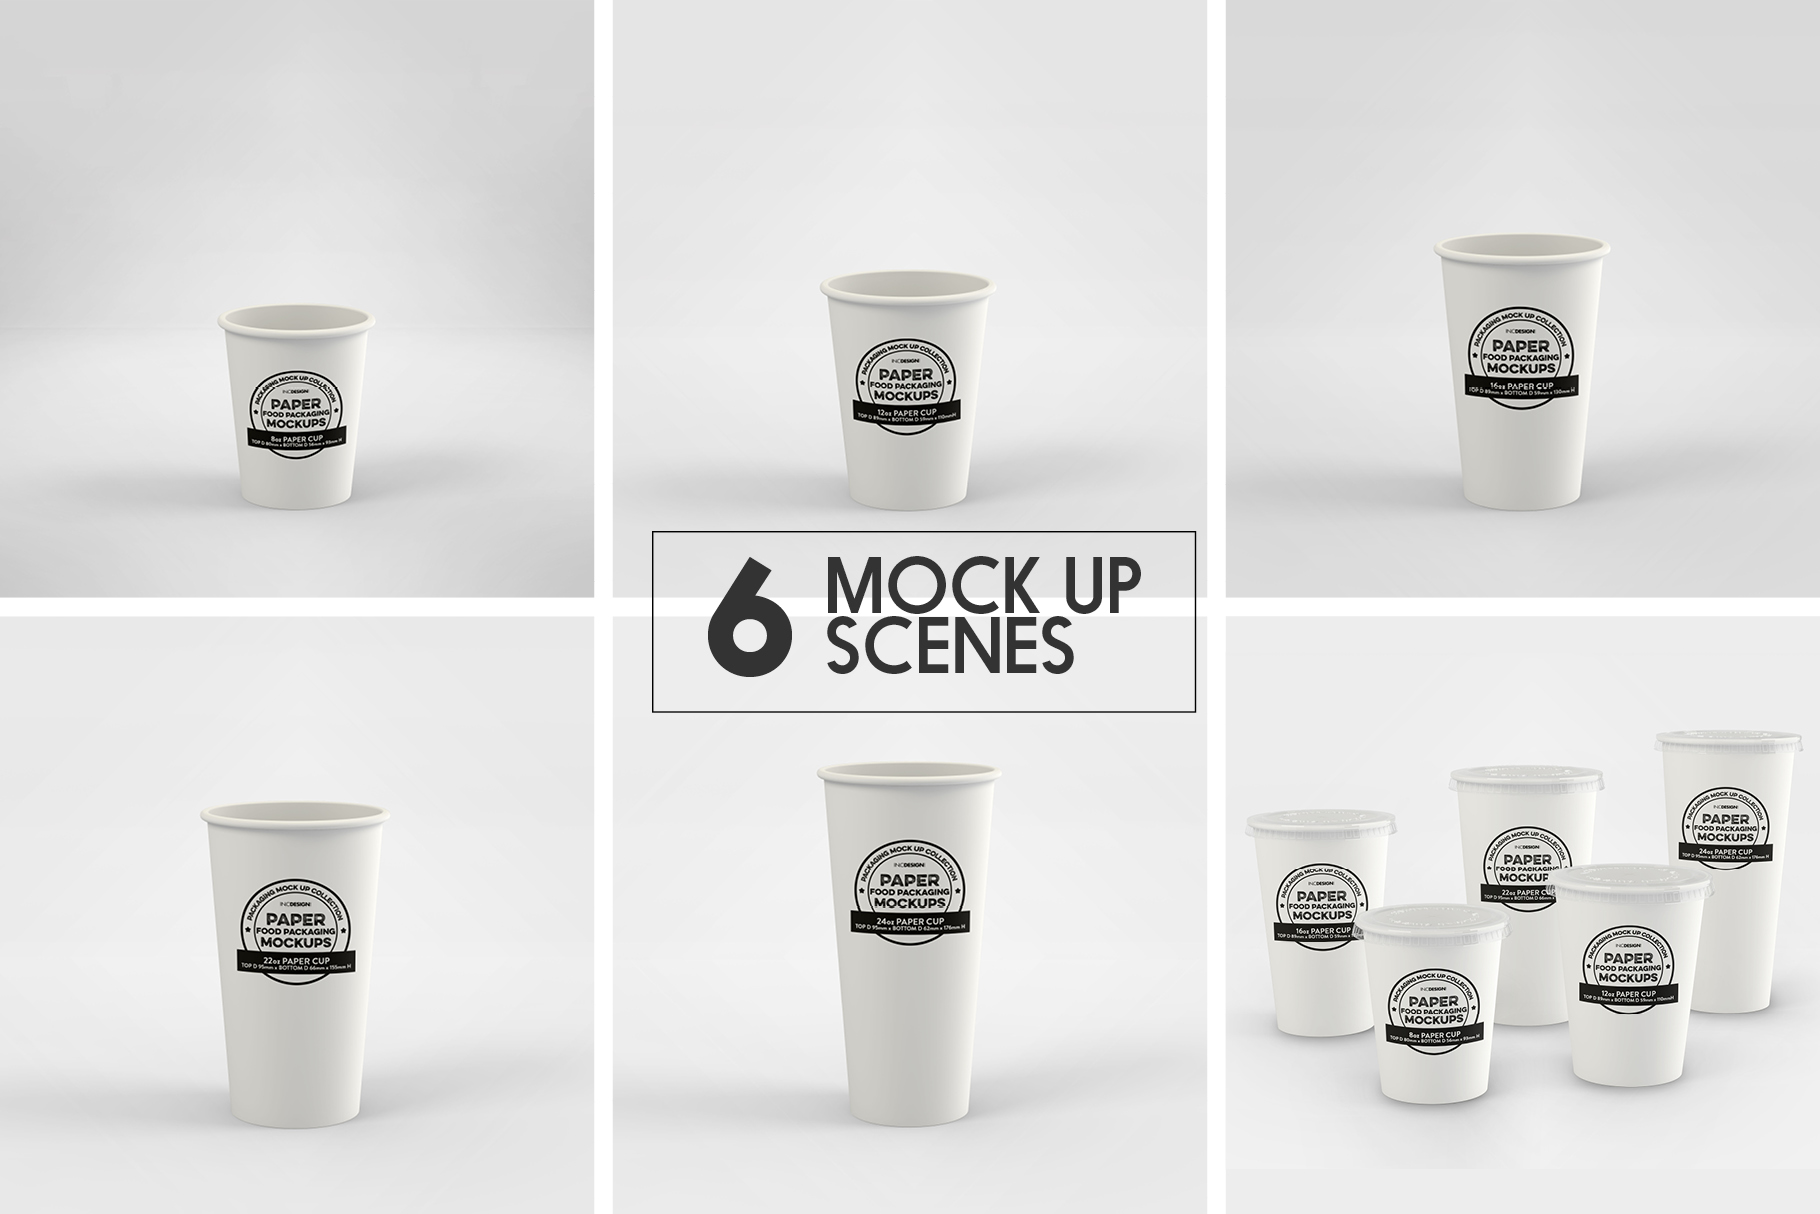 Paper Drink Cups Packaging Mockup example image 2